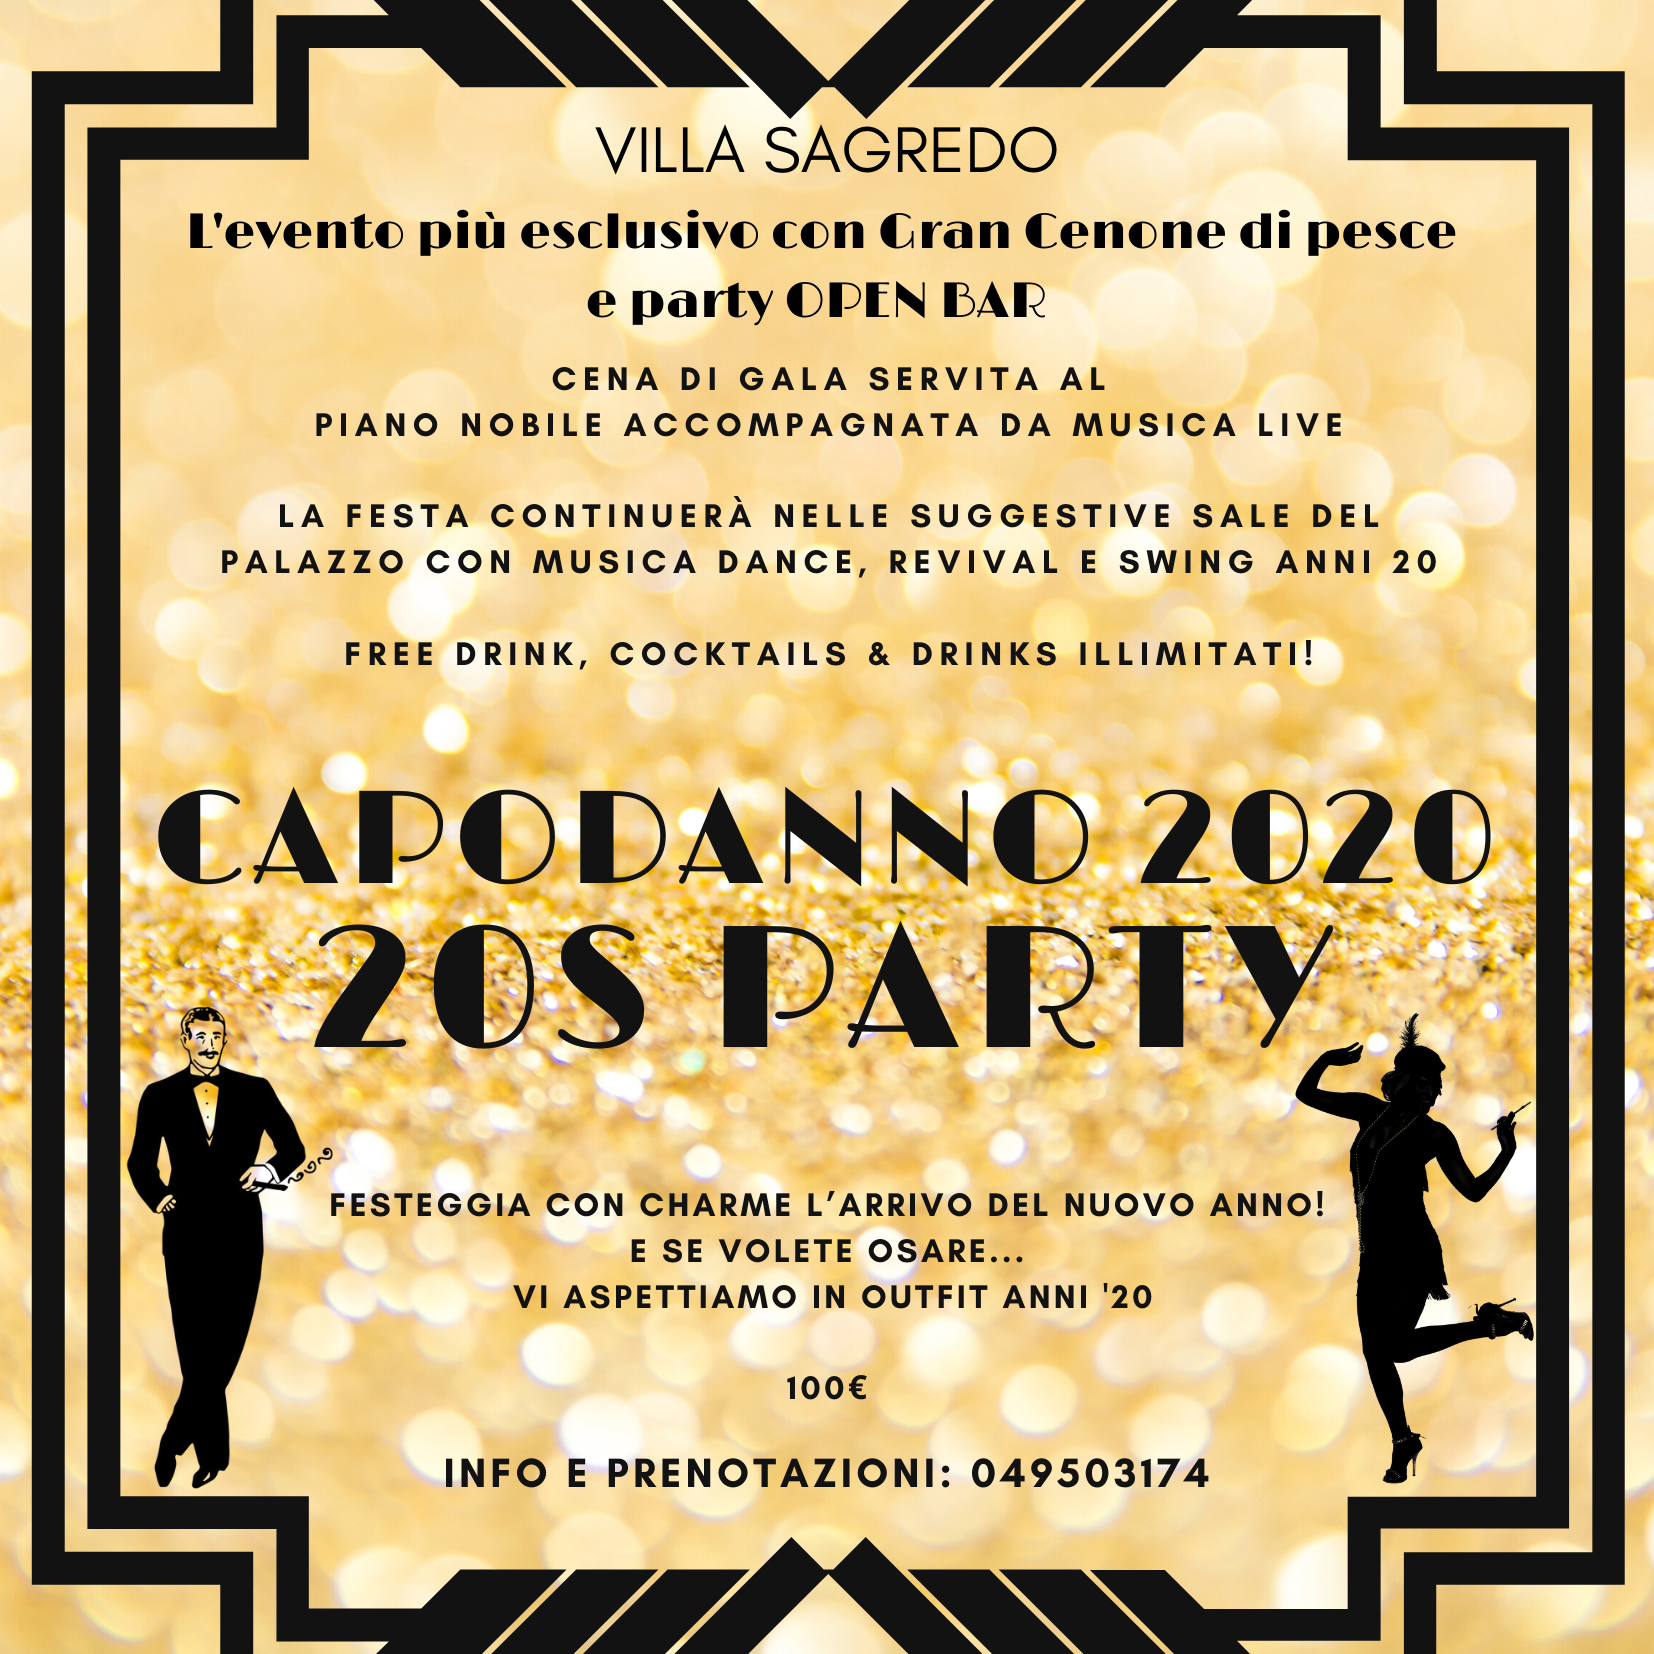 gold-and-black-bordered-1920s-party-invitation